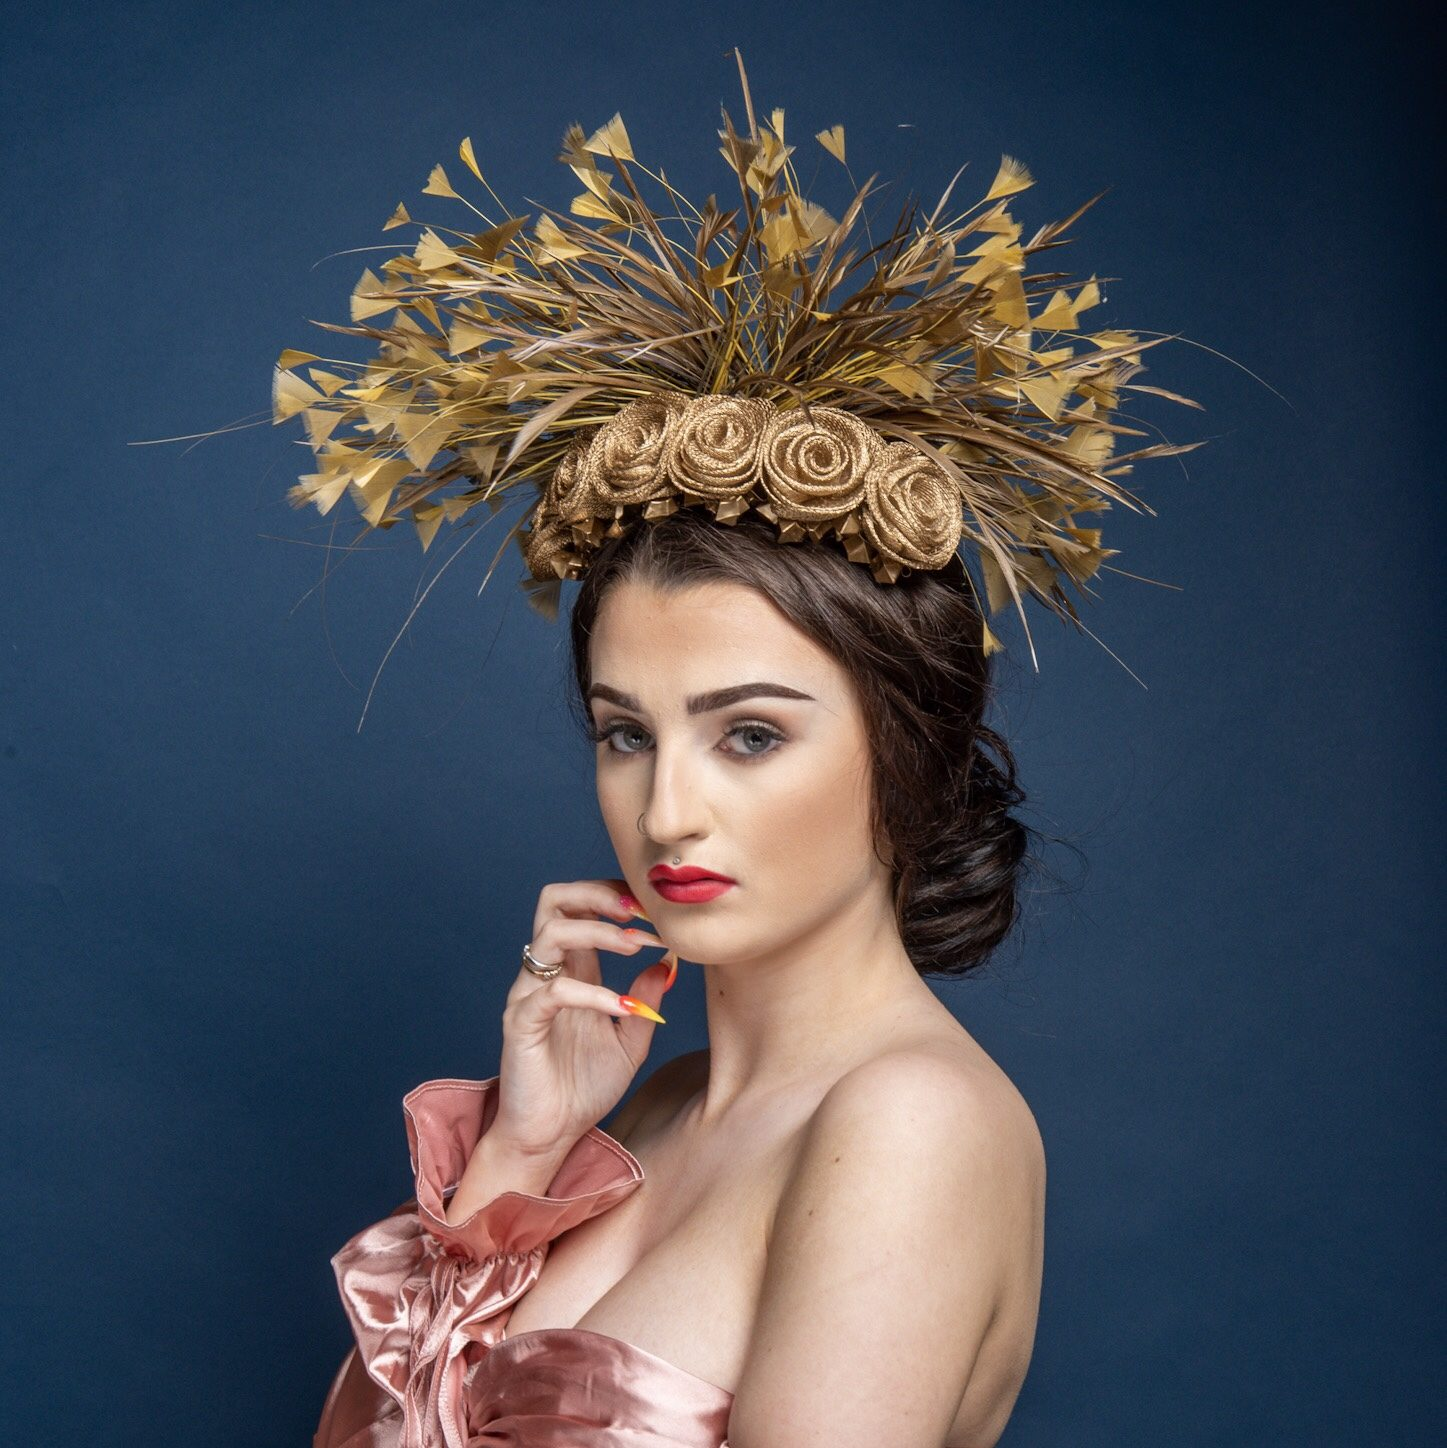 The Portrait Kitchen 'Roses of Gold' by Gemma Holley Millinery